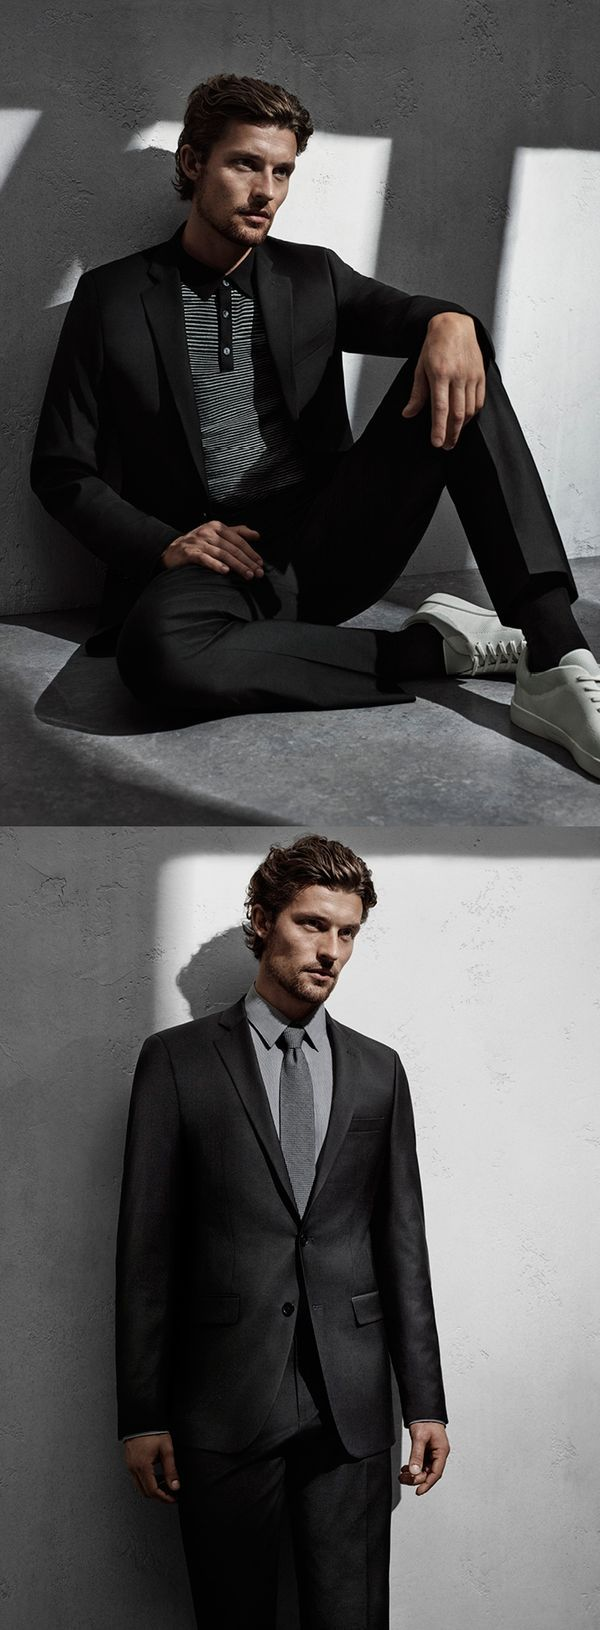 I relax in #mycalvins. Get a desk-to-dinner look this season with suiting + sportcoats in deep grey tones.